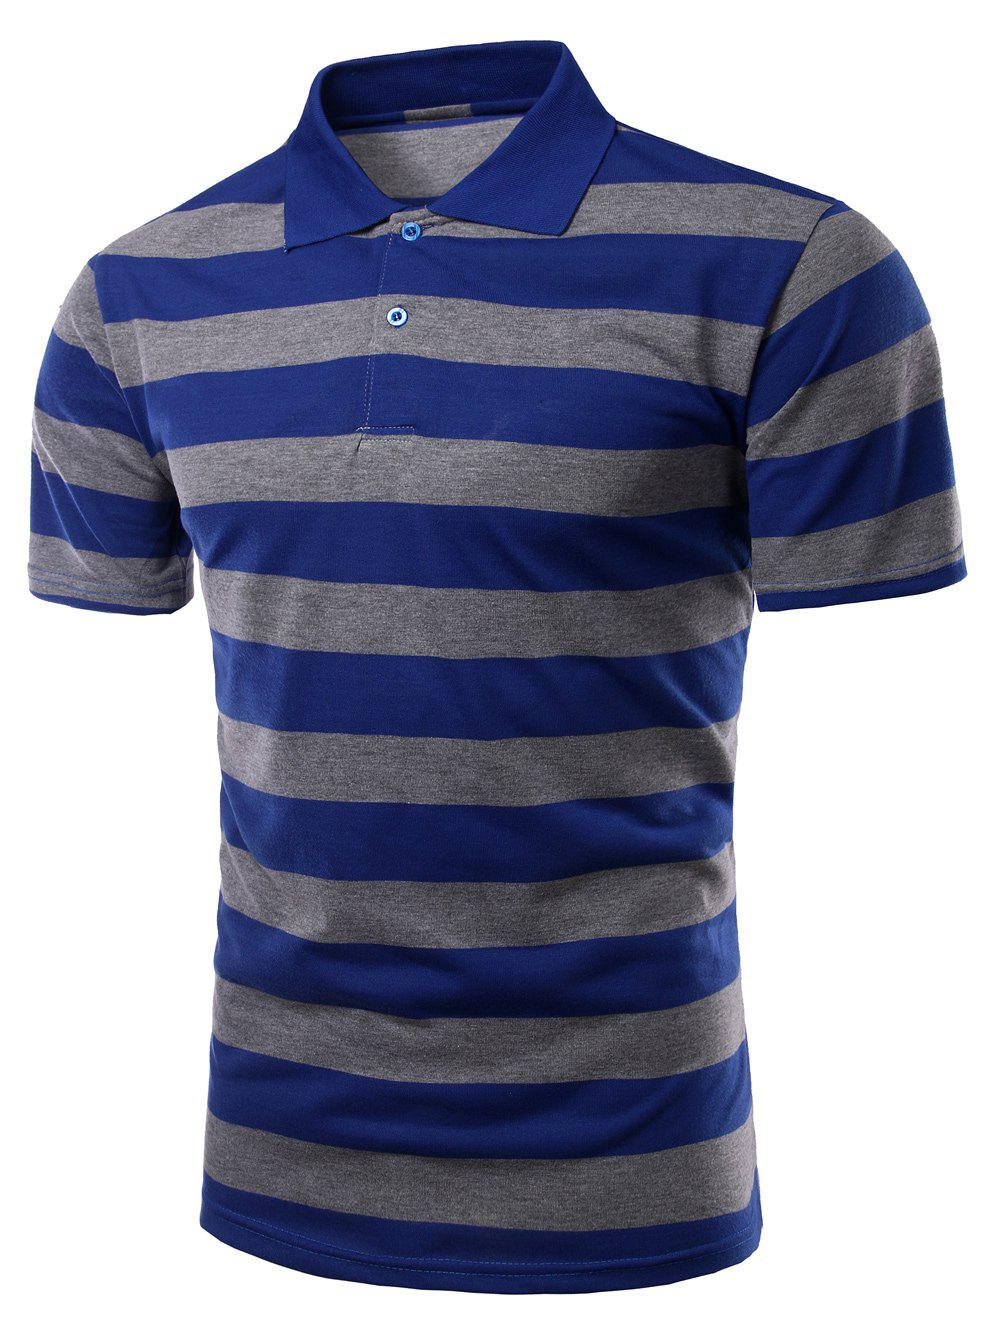 Men's Stripes Turn-down Collar Short Sleeves Polo T-Shirt